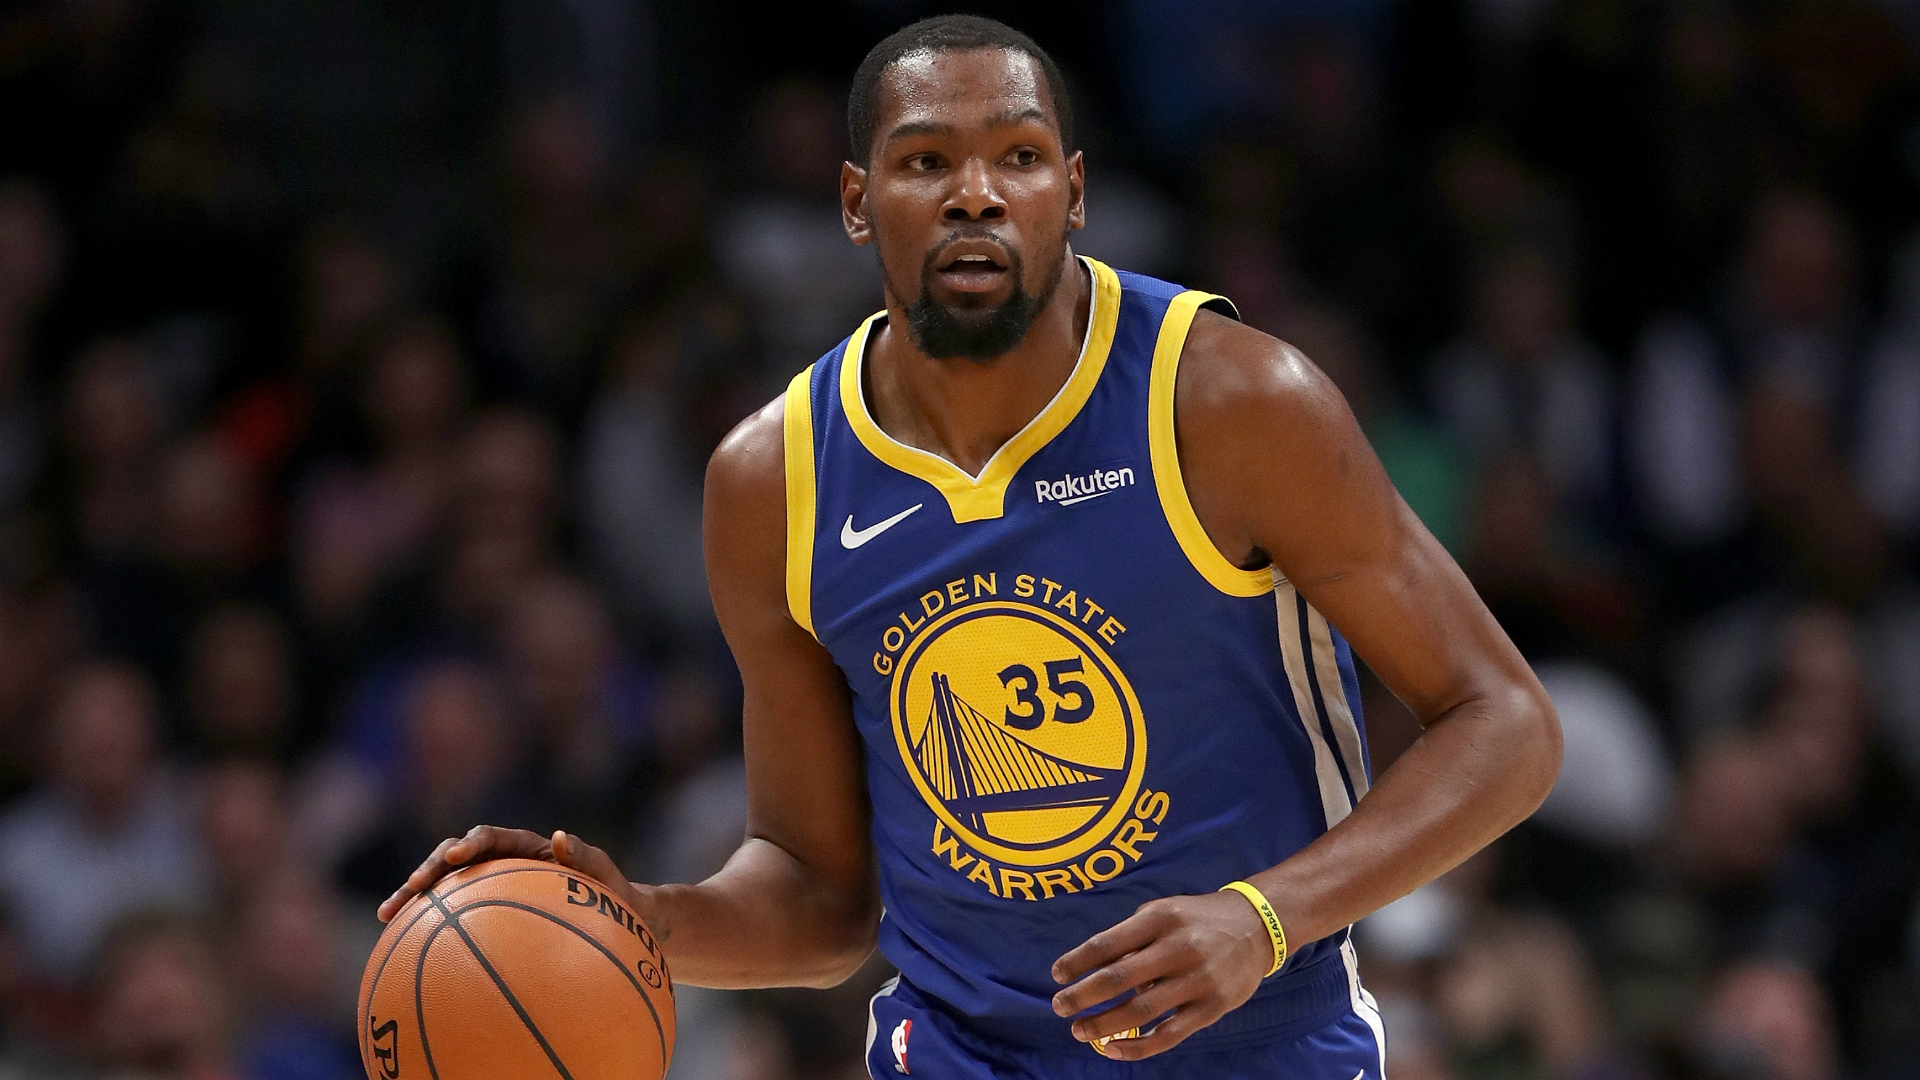 Kevin Durant on playing with Warriors: 'I sacrificed a lot of s— to be here'